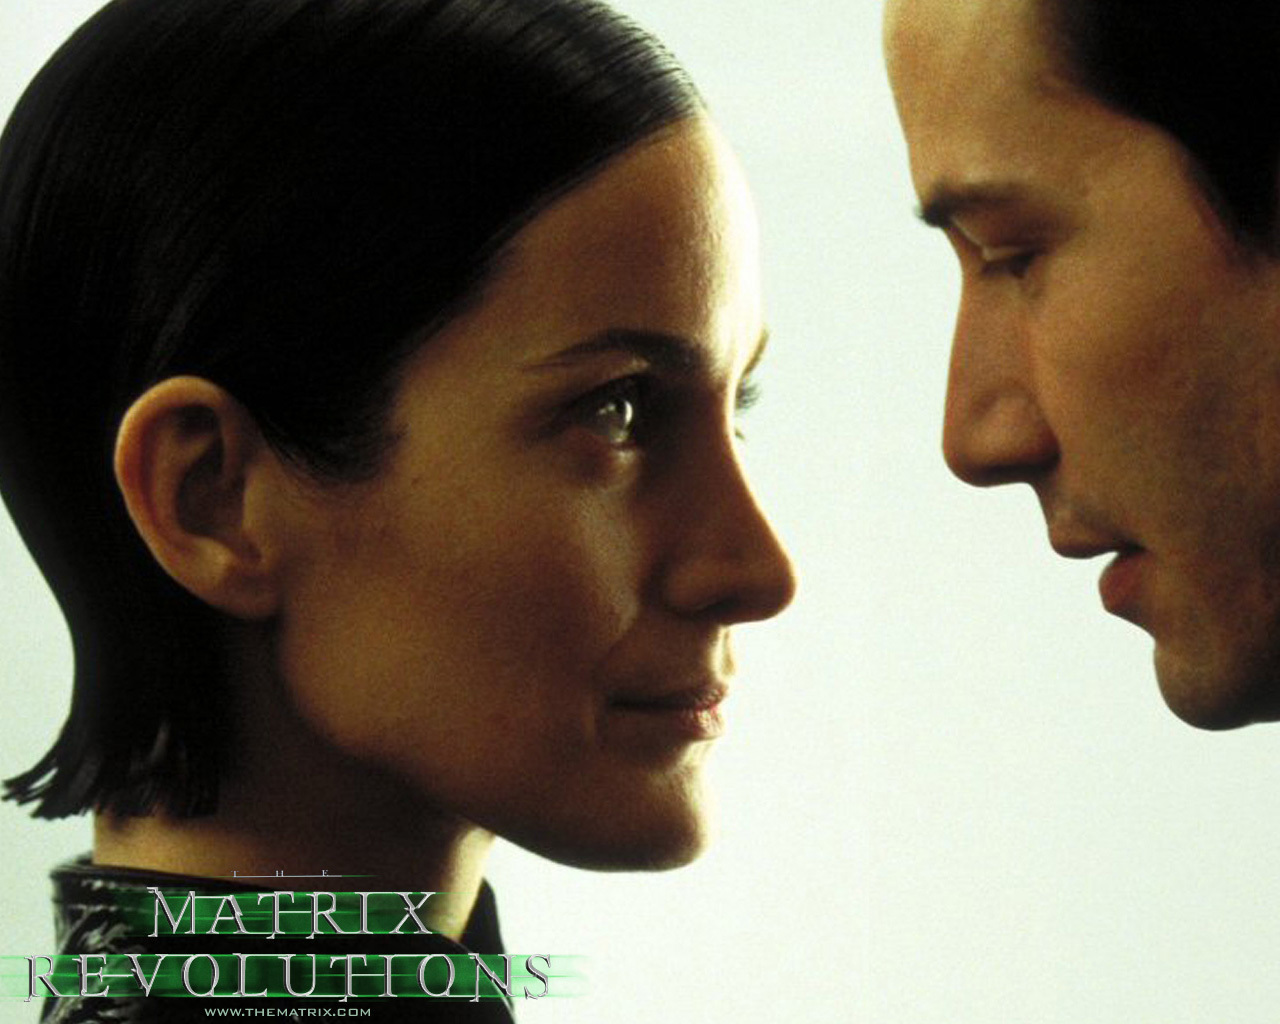 an analysis of messiah in the matrix When neo disembarks at zion for the first time in the matrix reloaded, afflicted  crowds await him and treat him as a messiah, begging for his healing touch just.